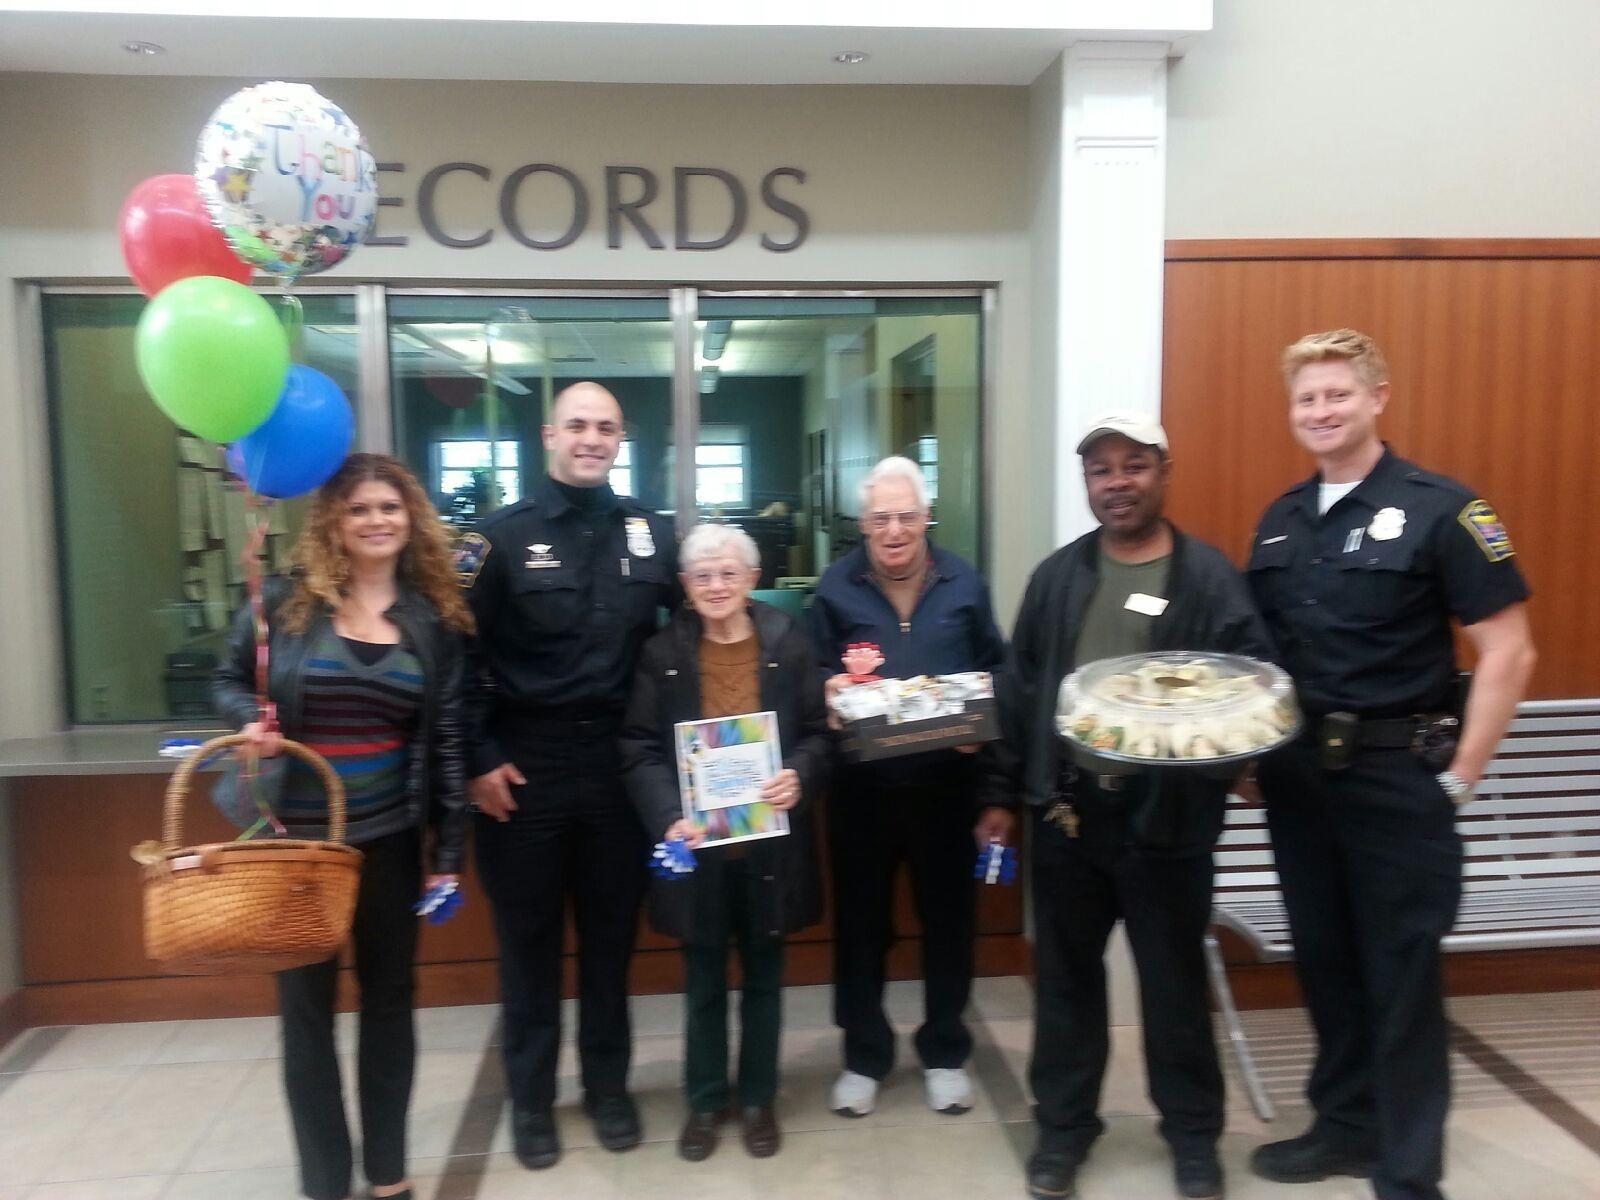 From left to right: SummerWood Membership Specialist, Anabela Ferreira; West Hartford Police Officer, Aaron Vafiades; SummerWood residents, Rose and Fred Gutwill; SummerWood Environmental Services Manager, Clenbert Senior; and West Hartford Police Officer, Sean Dibella.